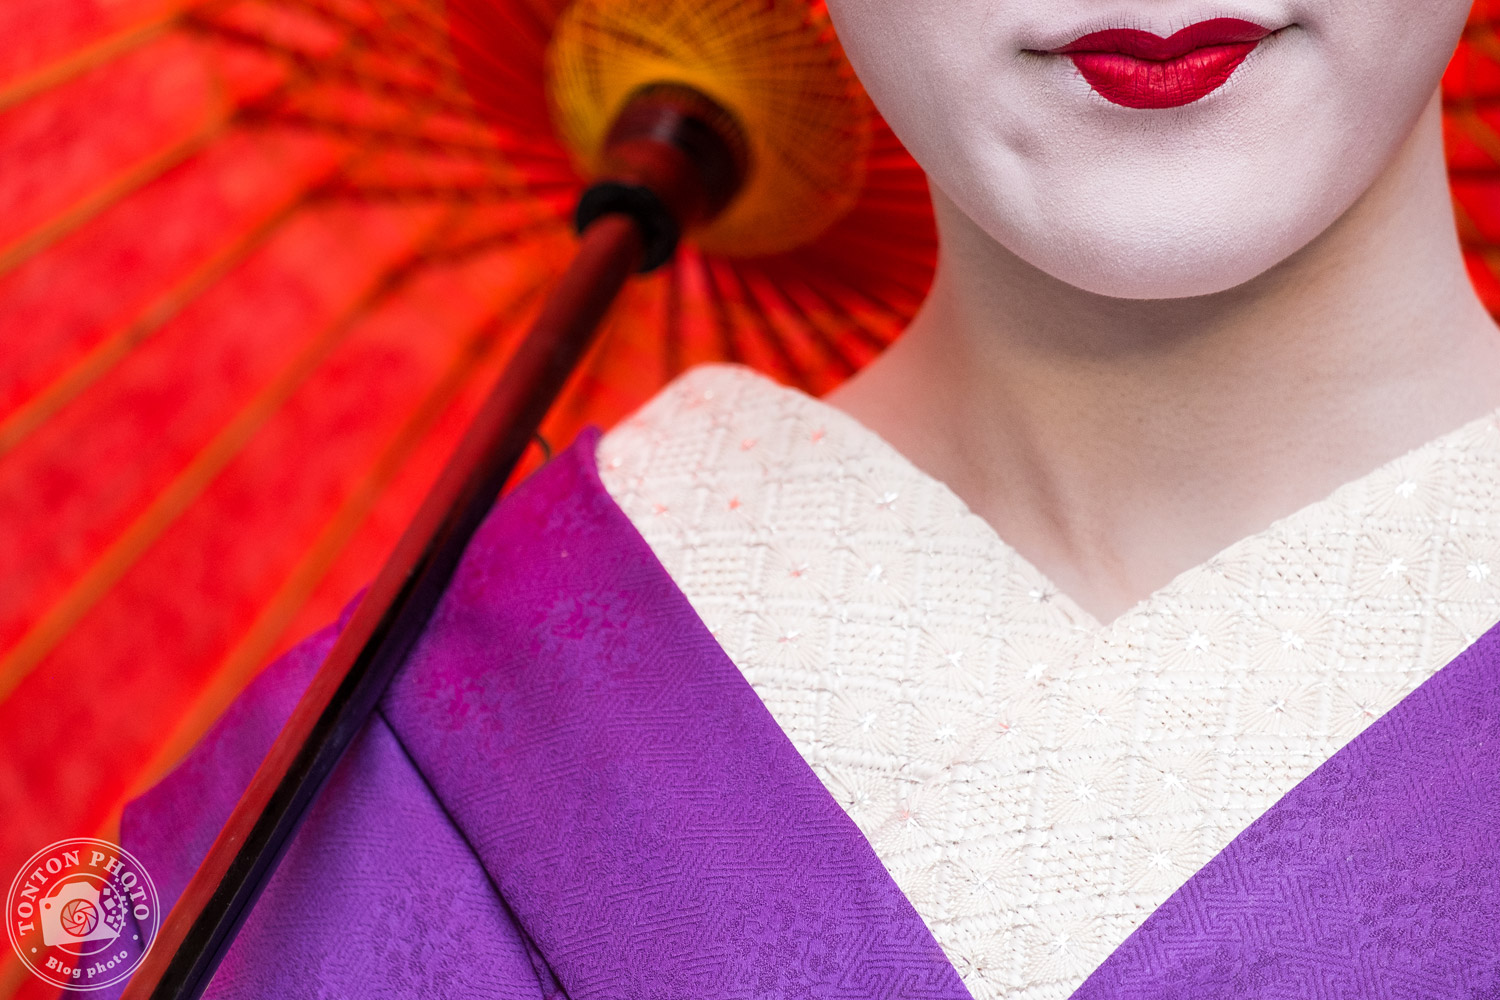 Portrait suggestif de geisha, quartier de Gion, Kyoto, Japon © Clément Racineux / Tonton Photo